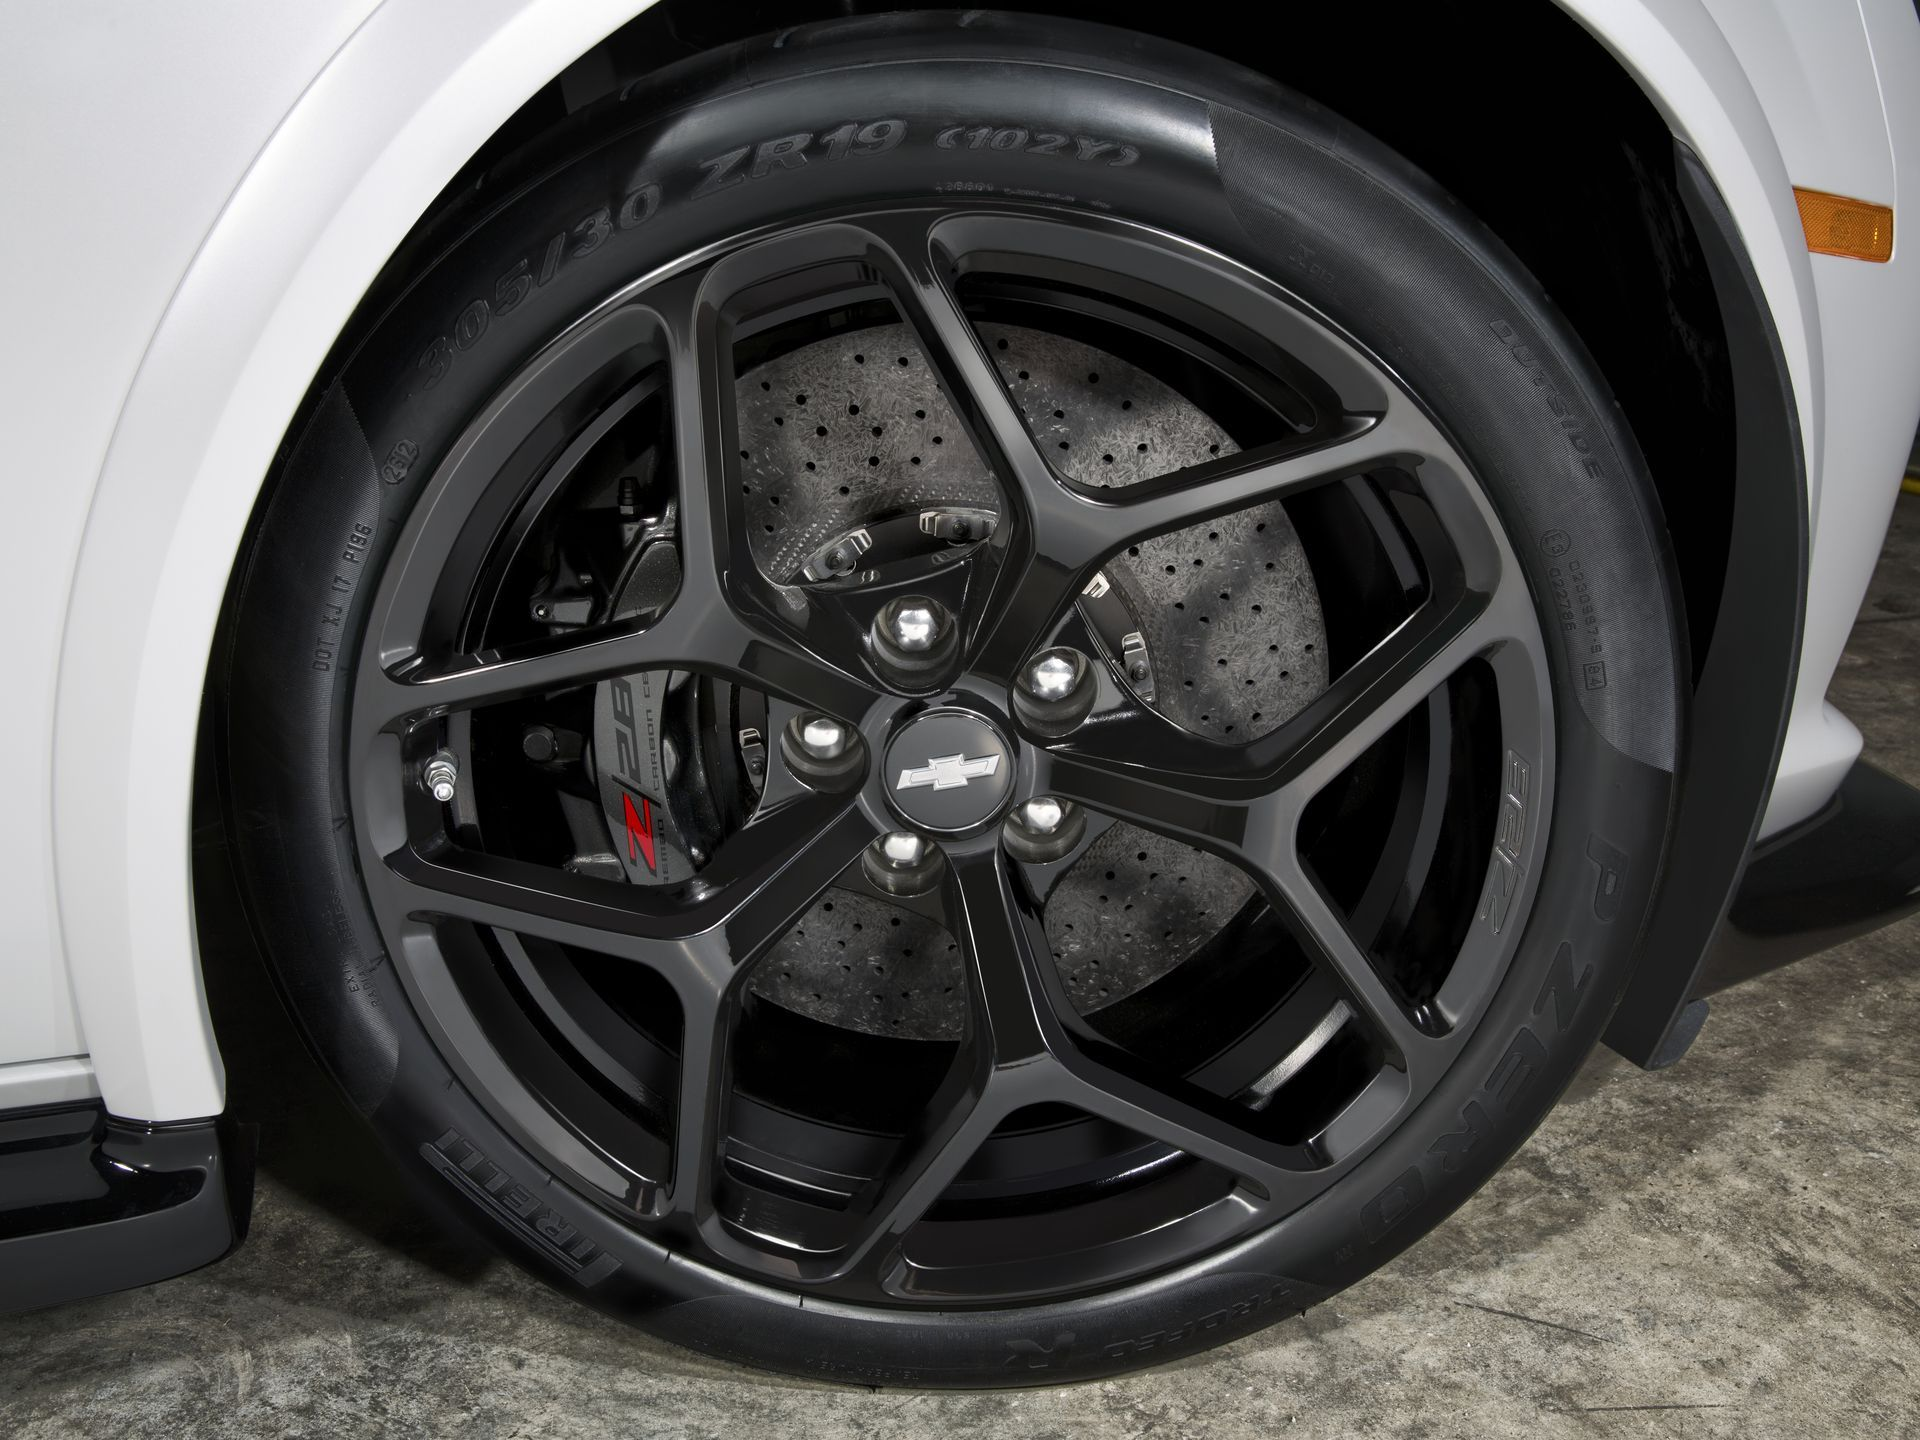 The 2014 Chevrolet Camaro Z28 has standard carbon-ceramic Brembo brakes